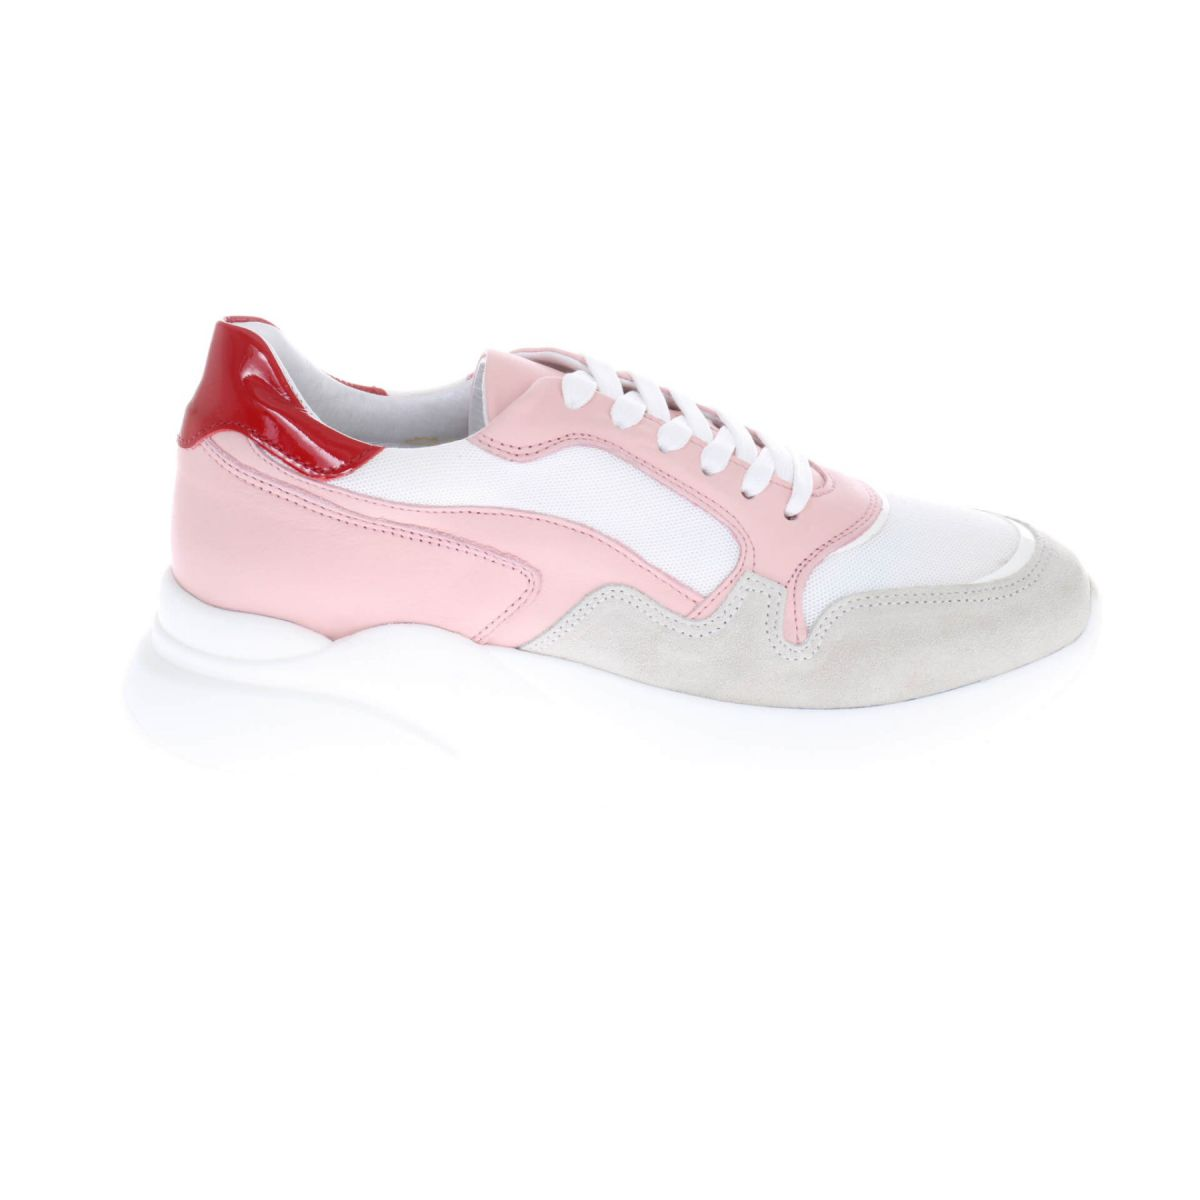 HIP D1904 Sneakers Wit Roze Rood